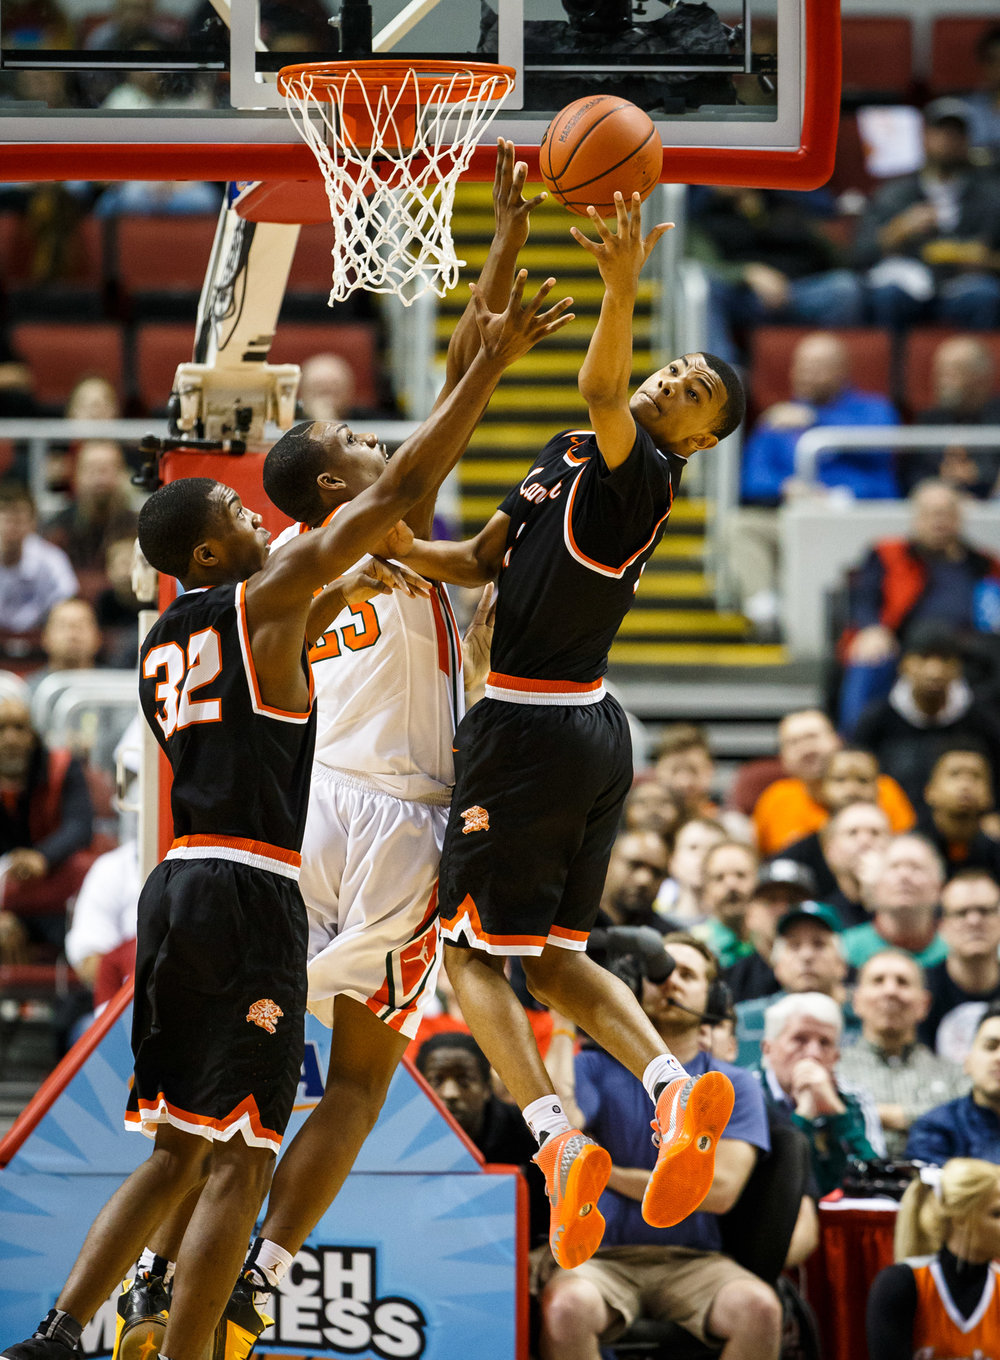 Lanphier's Cardell McGee (2) goes for a rebound against Chicago Morgan Park's Lenell Henry (23) in the first quarter during the semifinals of the IHSA Class 3A Basketball State Finals at Carver Arena, Friday, March 17, 2017, in Peoria, Ill. [Justin L. Fowler/The State Journal-Register]